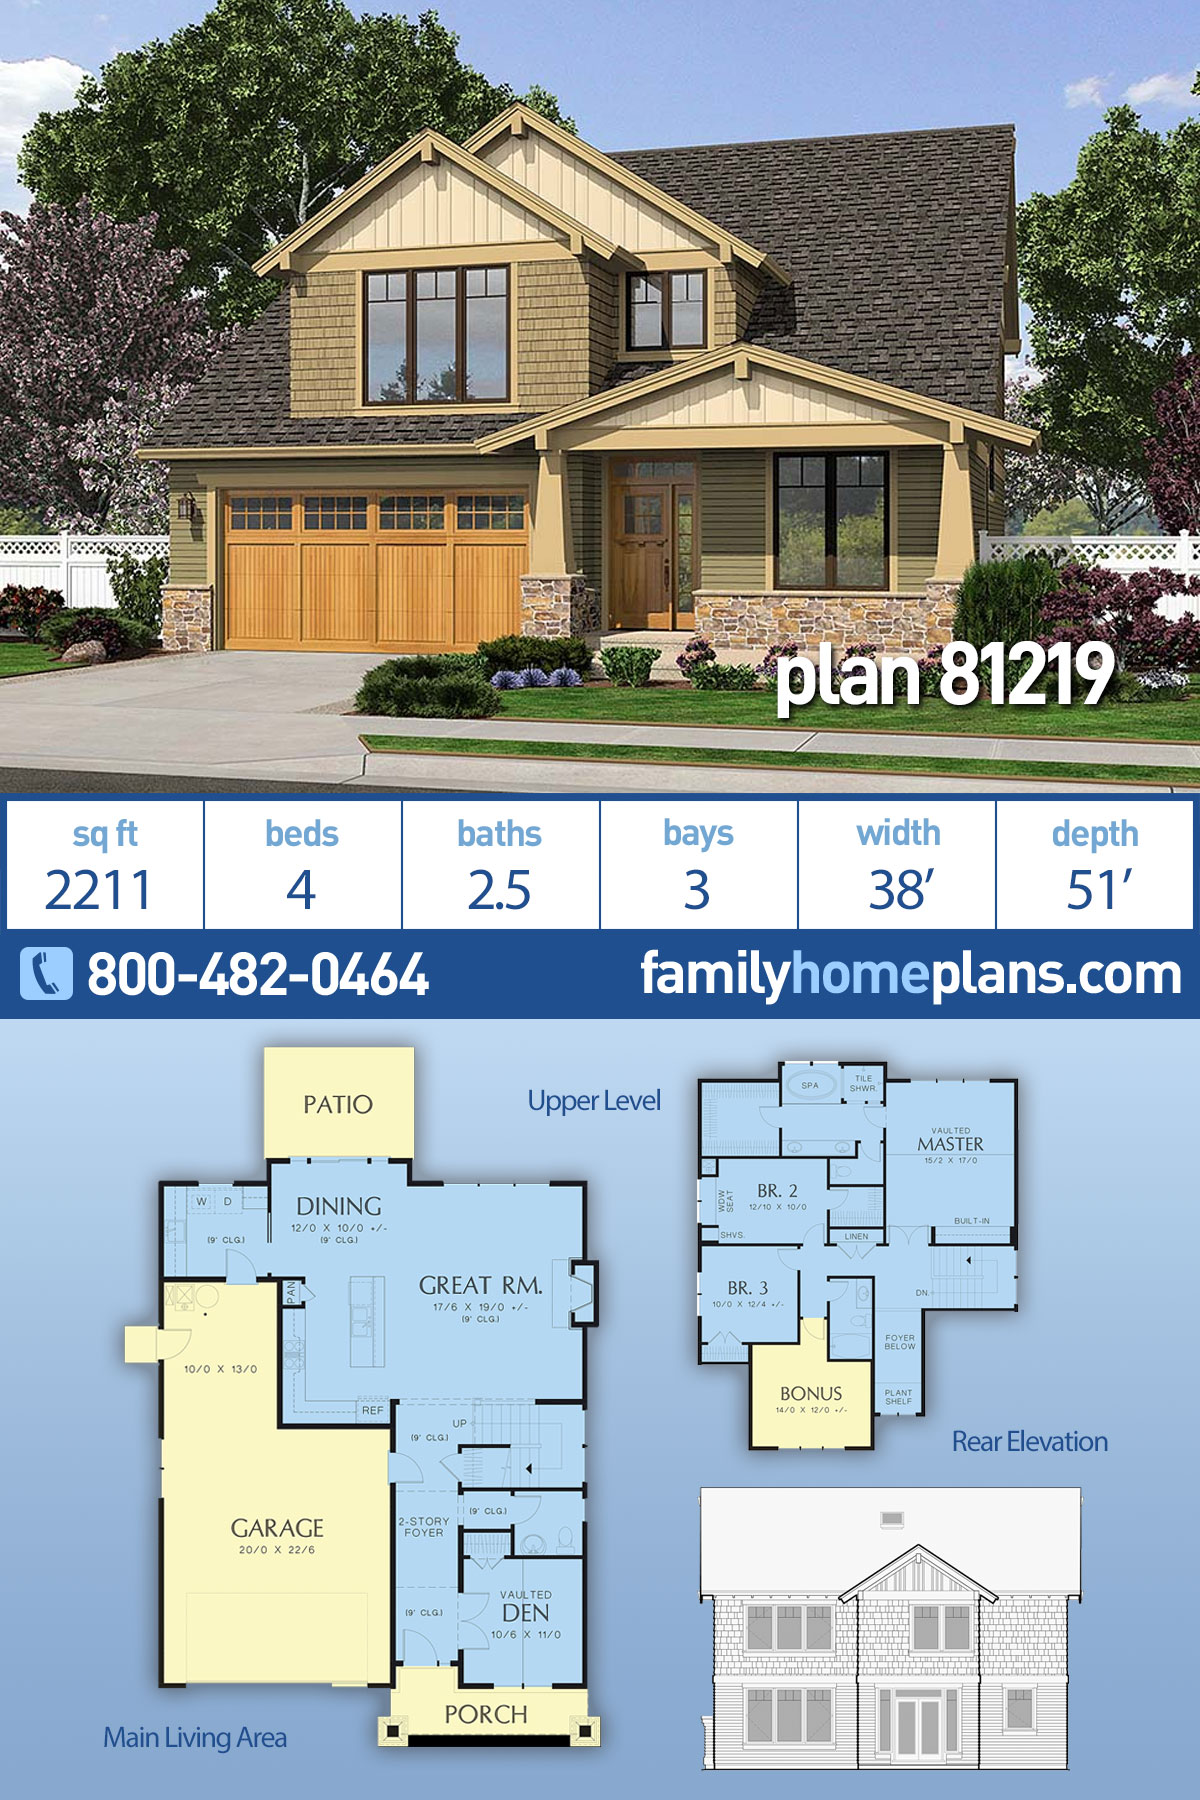 Bungalow, Craftsman, Traditional House Plan 81219 with 4 Beds, 3 Baths, 3 Car Garage